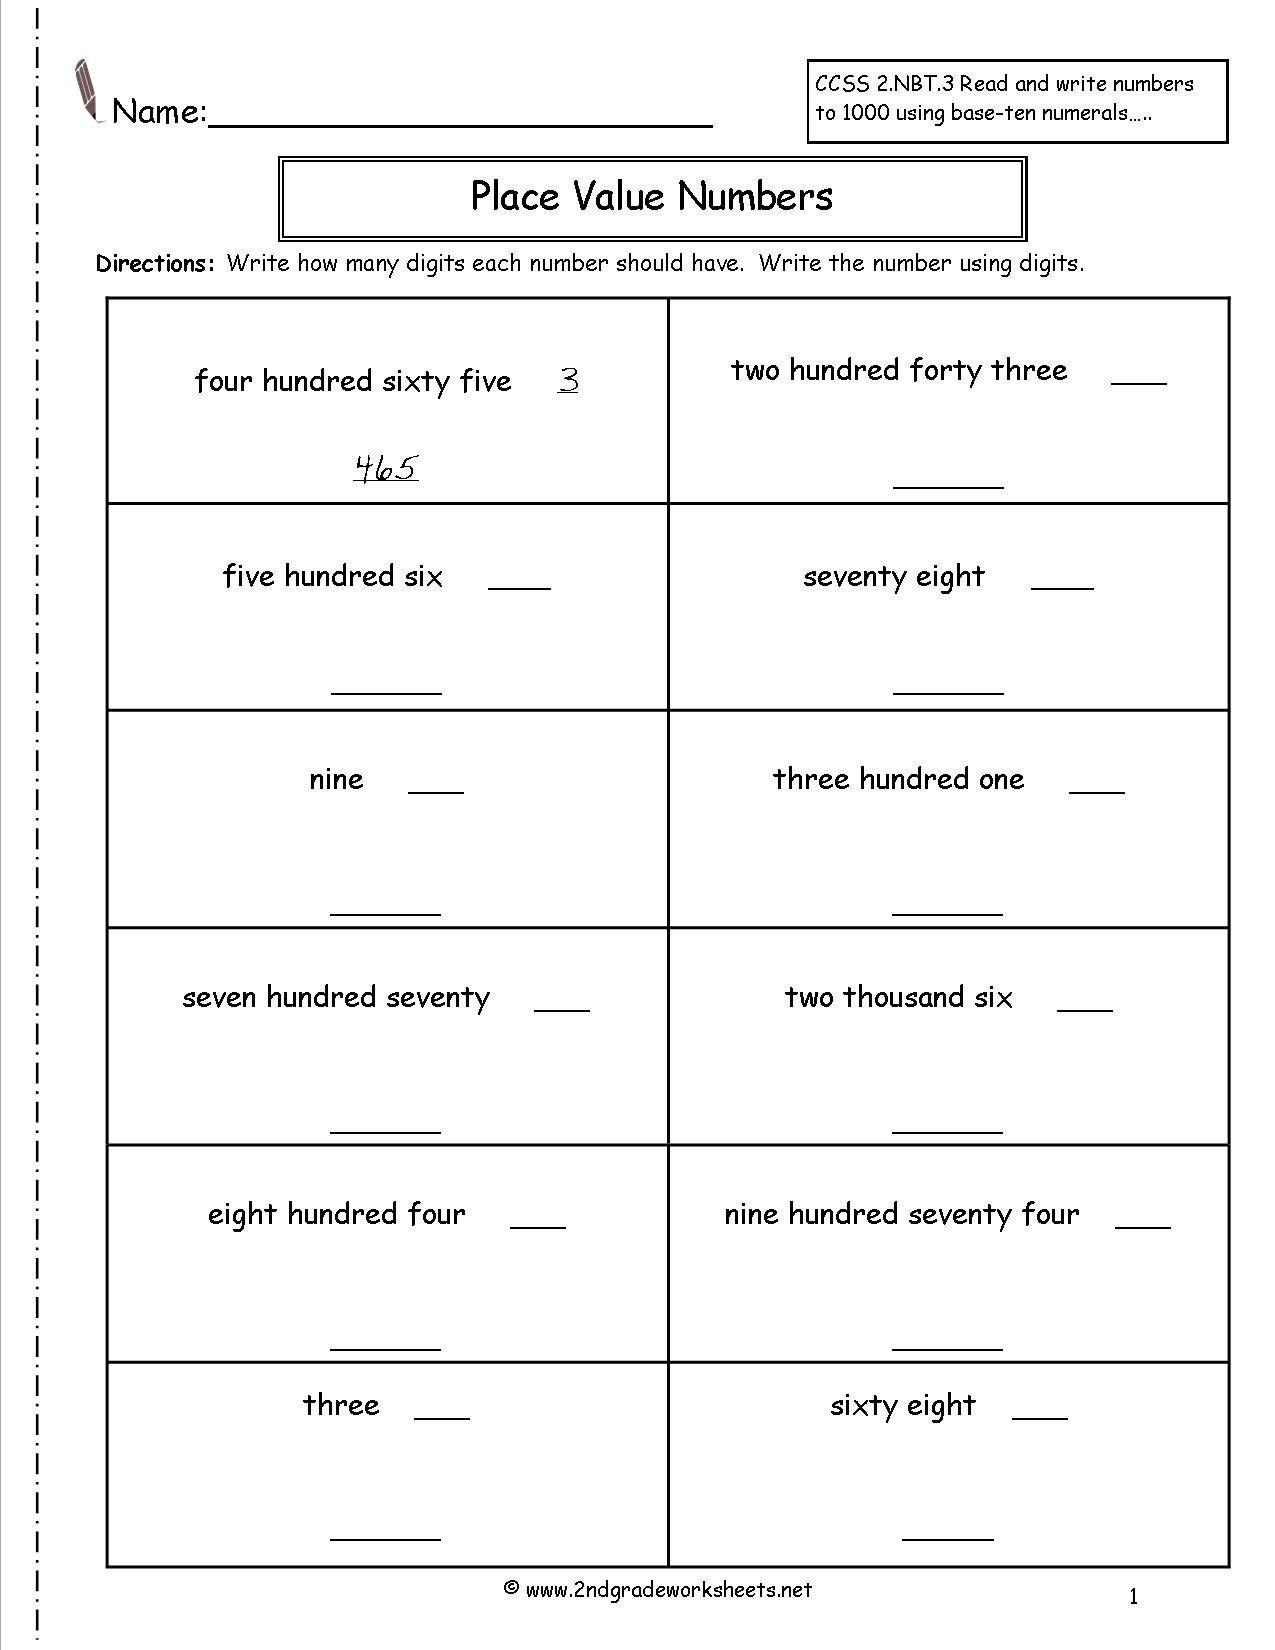 2nd Grade Place Value Worksheets Second Grade Place Value